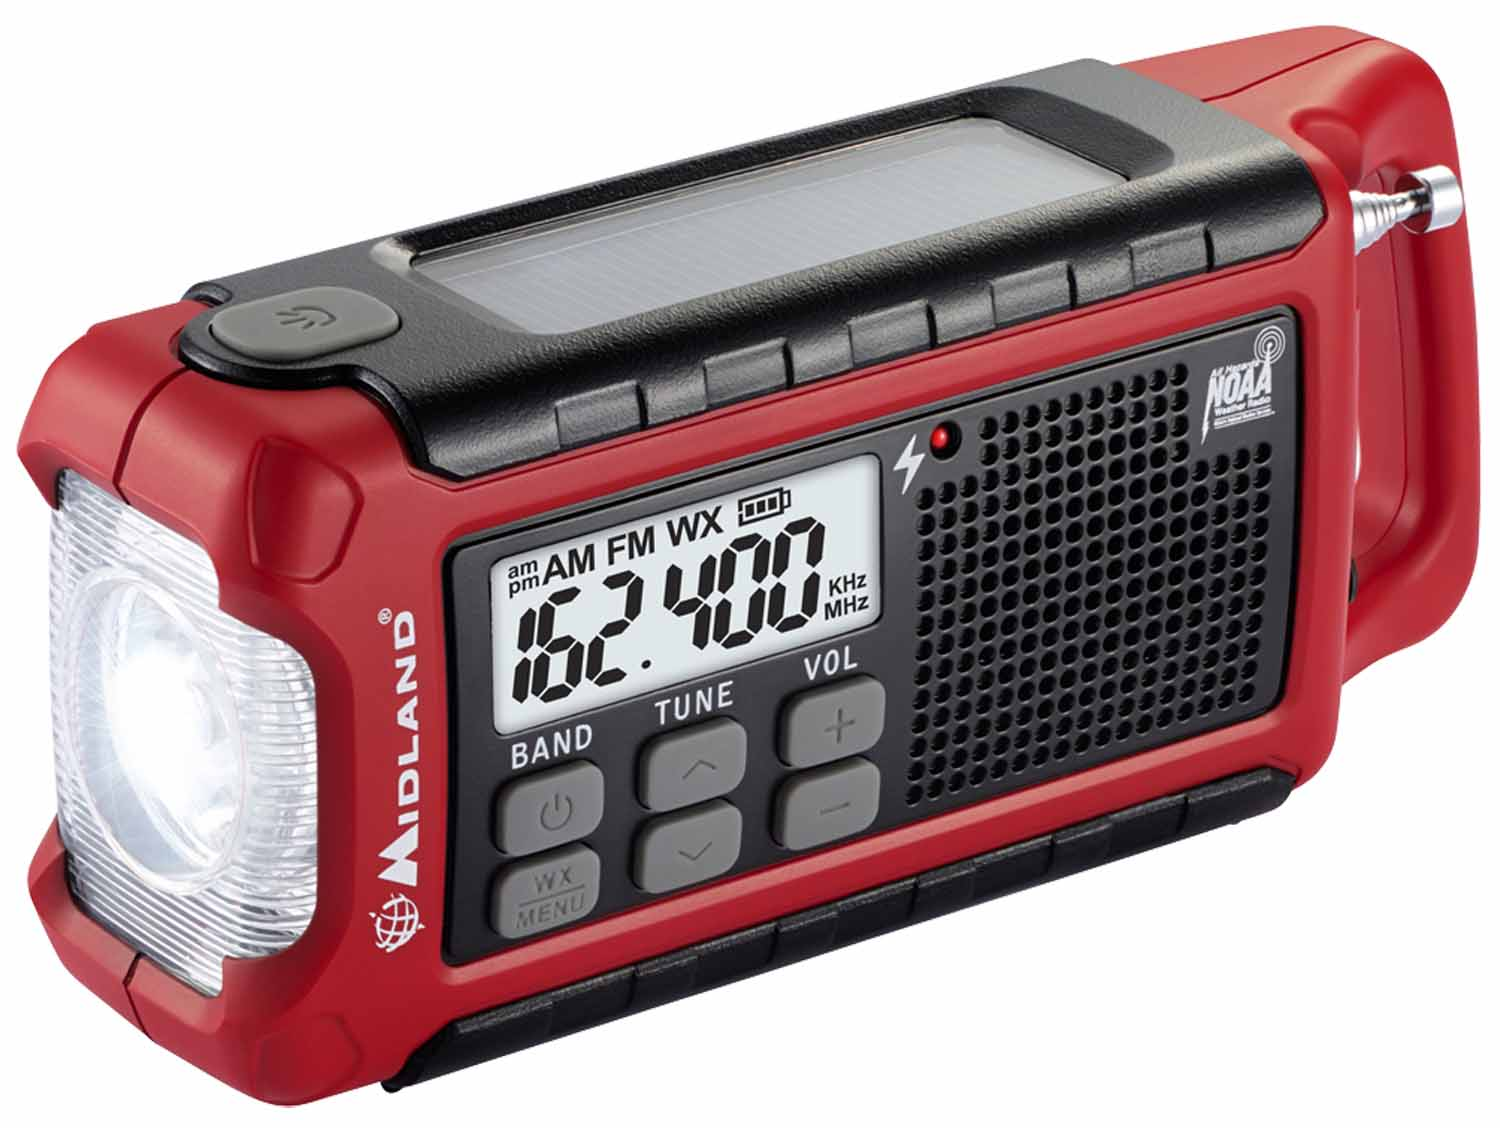 Midland Emergency AM/FM Crank Radio